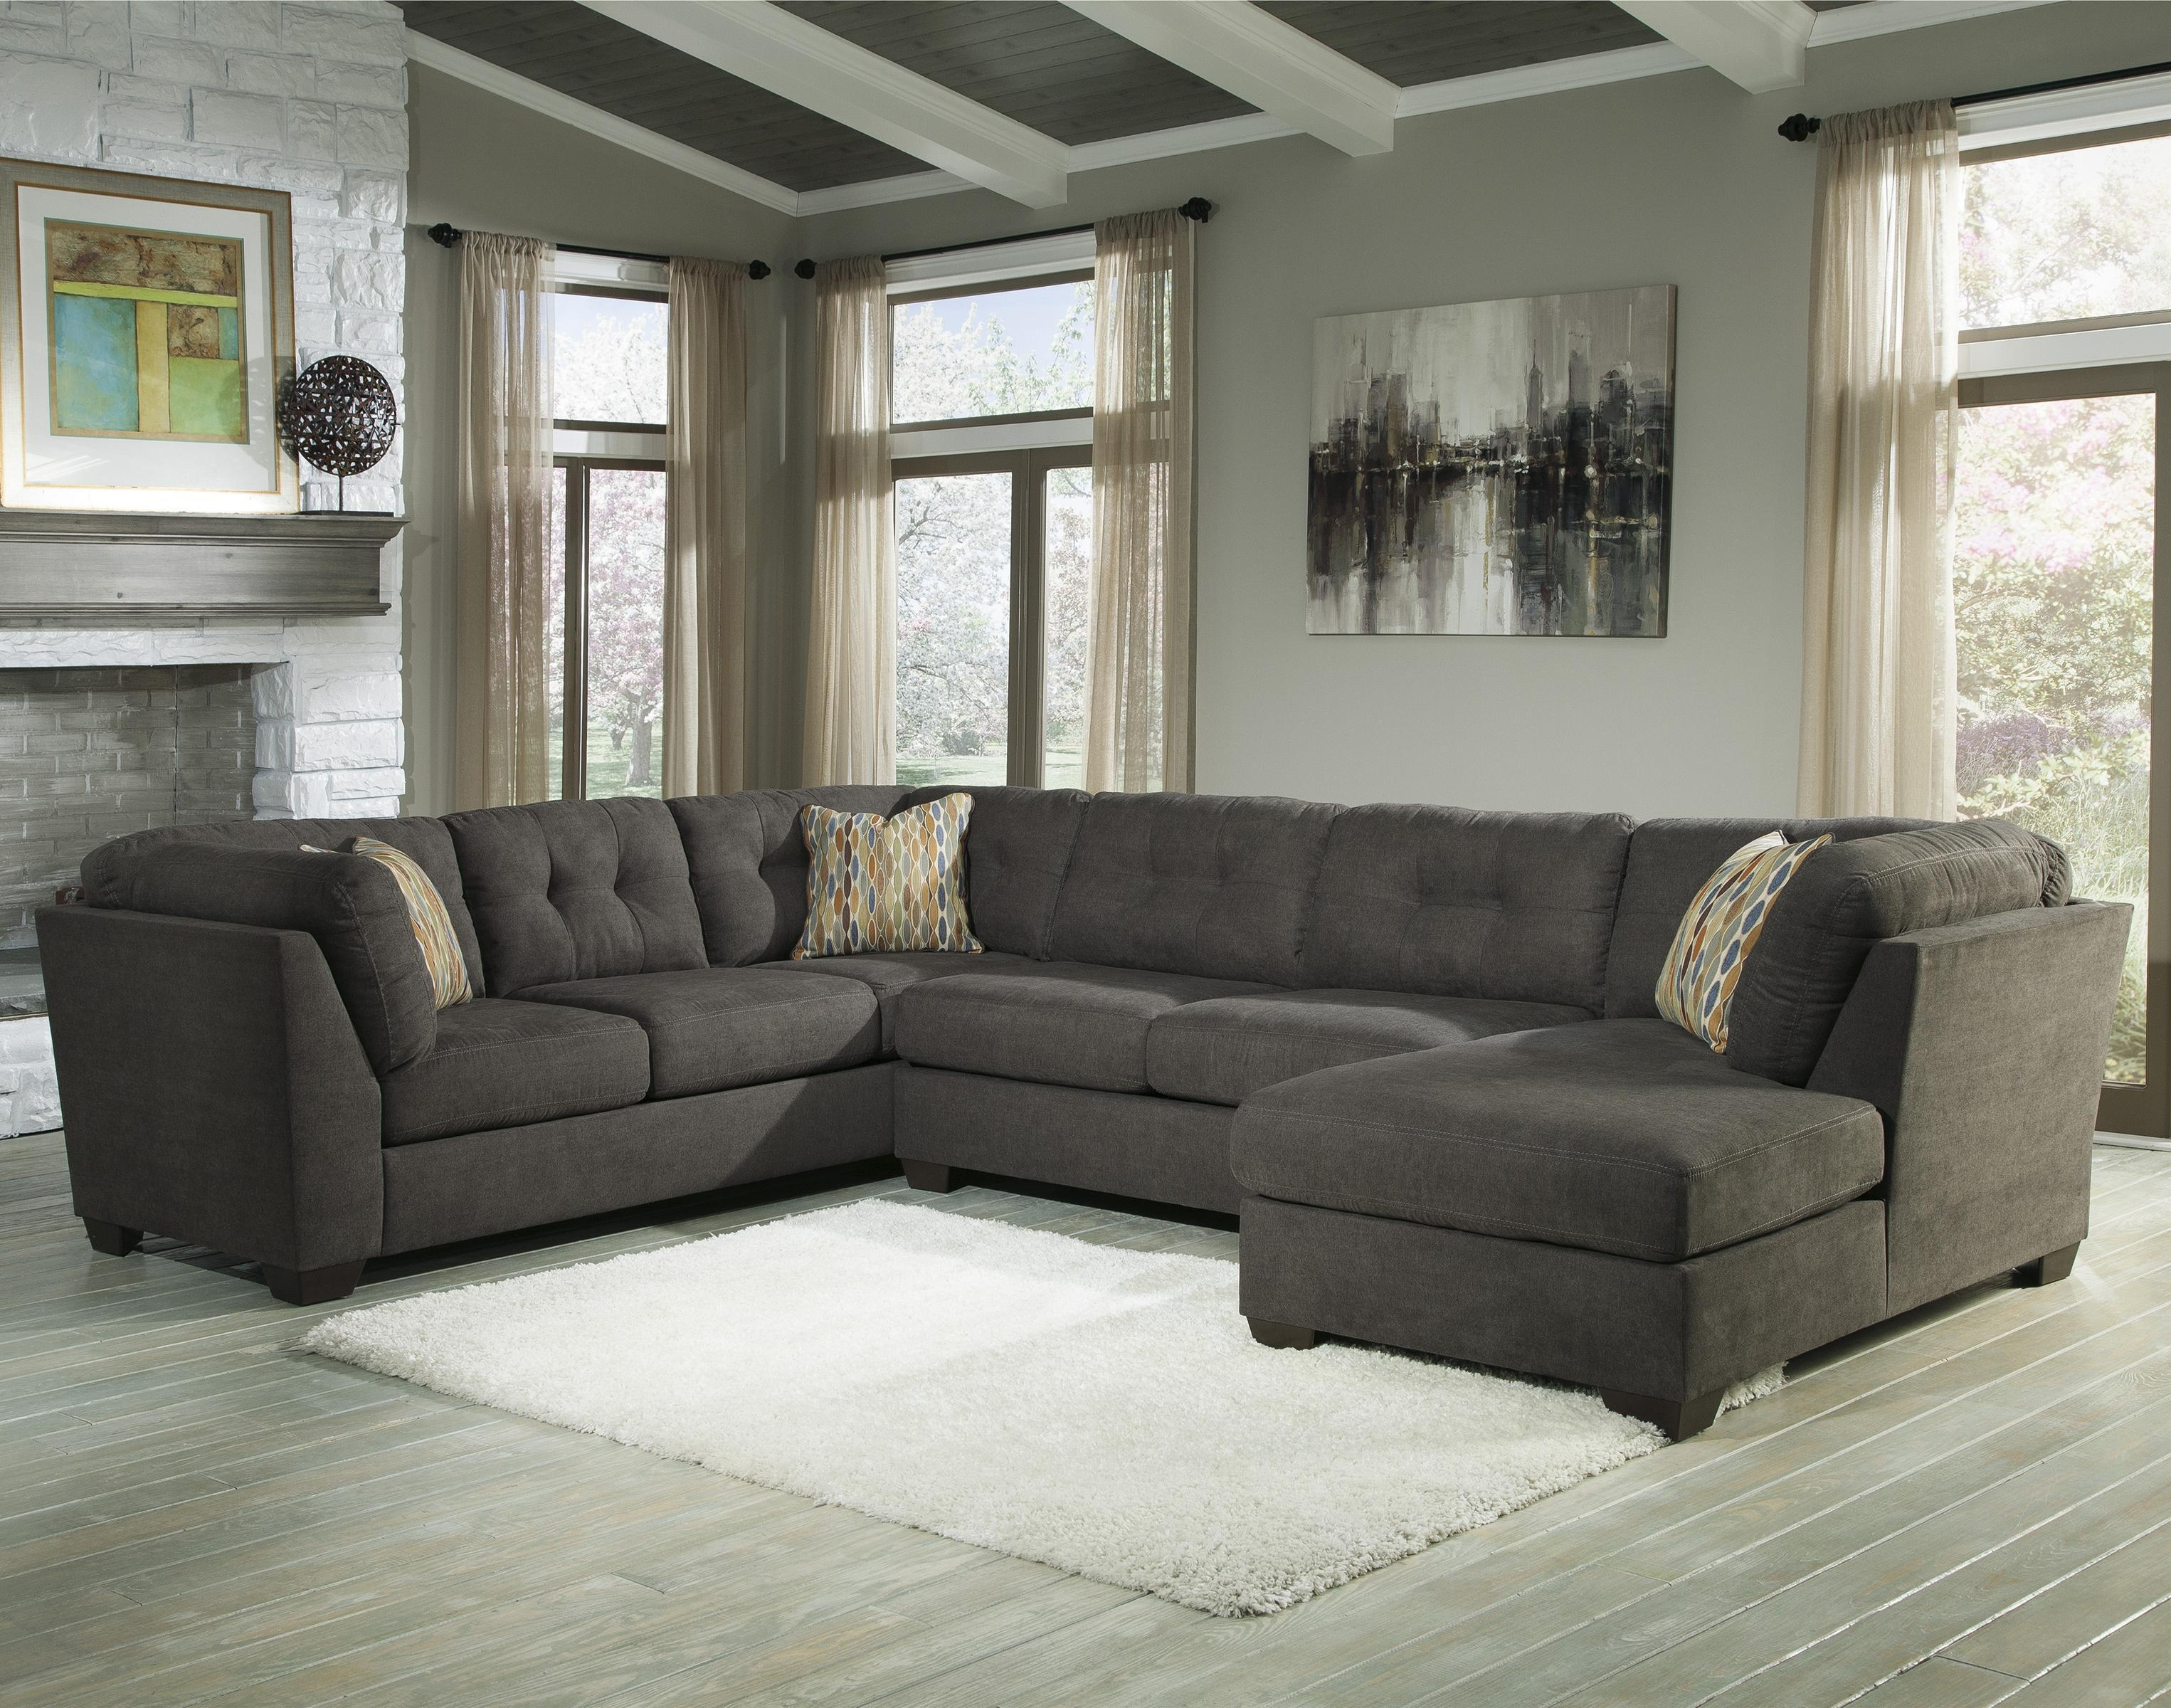 Benchcraft Delta City – Steel 3 Piece Modular Sectional With Right Inside 3 Piece Sectional Sleeper Sofa (Image 5 of 15)